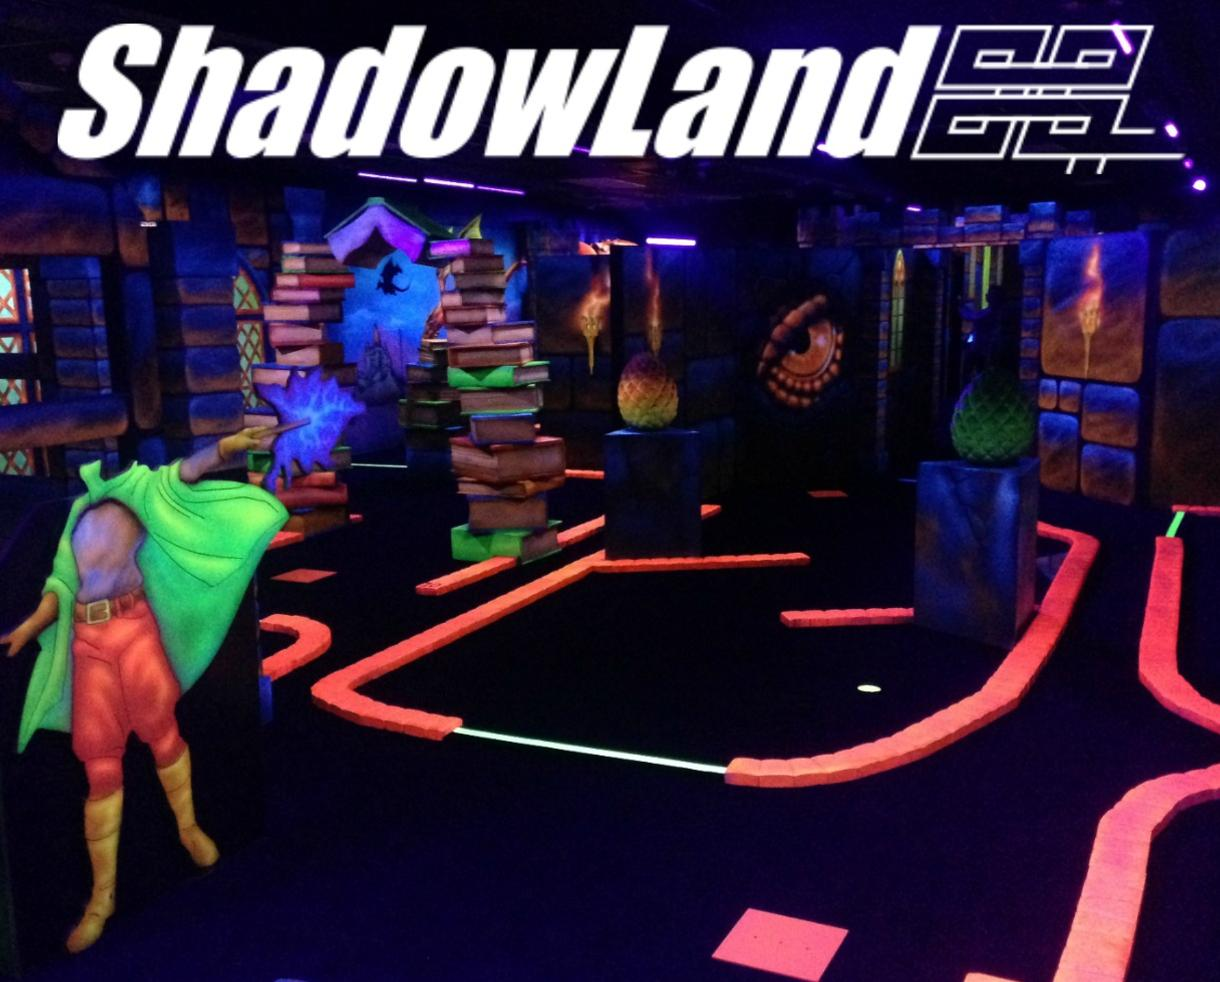 Two Rounds of Glow Mini-Golf at Shadowland - Alexandria/Springfield Location ONLY